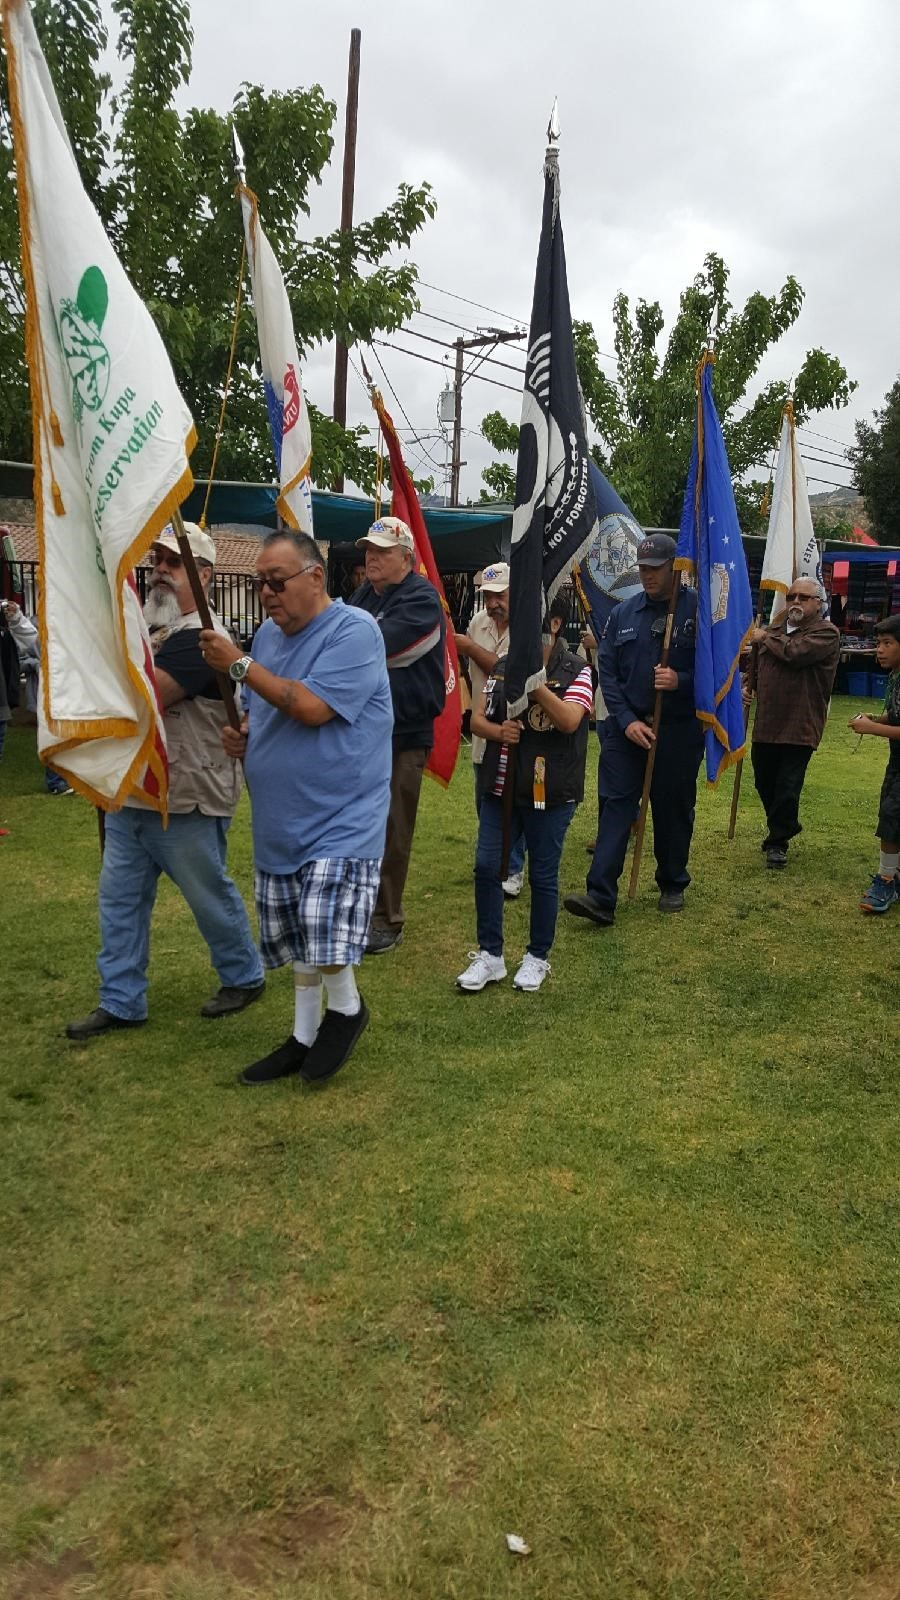 A procession of men in modern dress holding tribal and POW-MIA flags